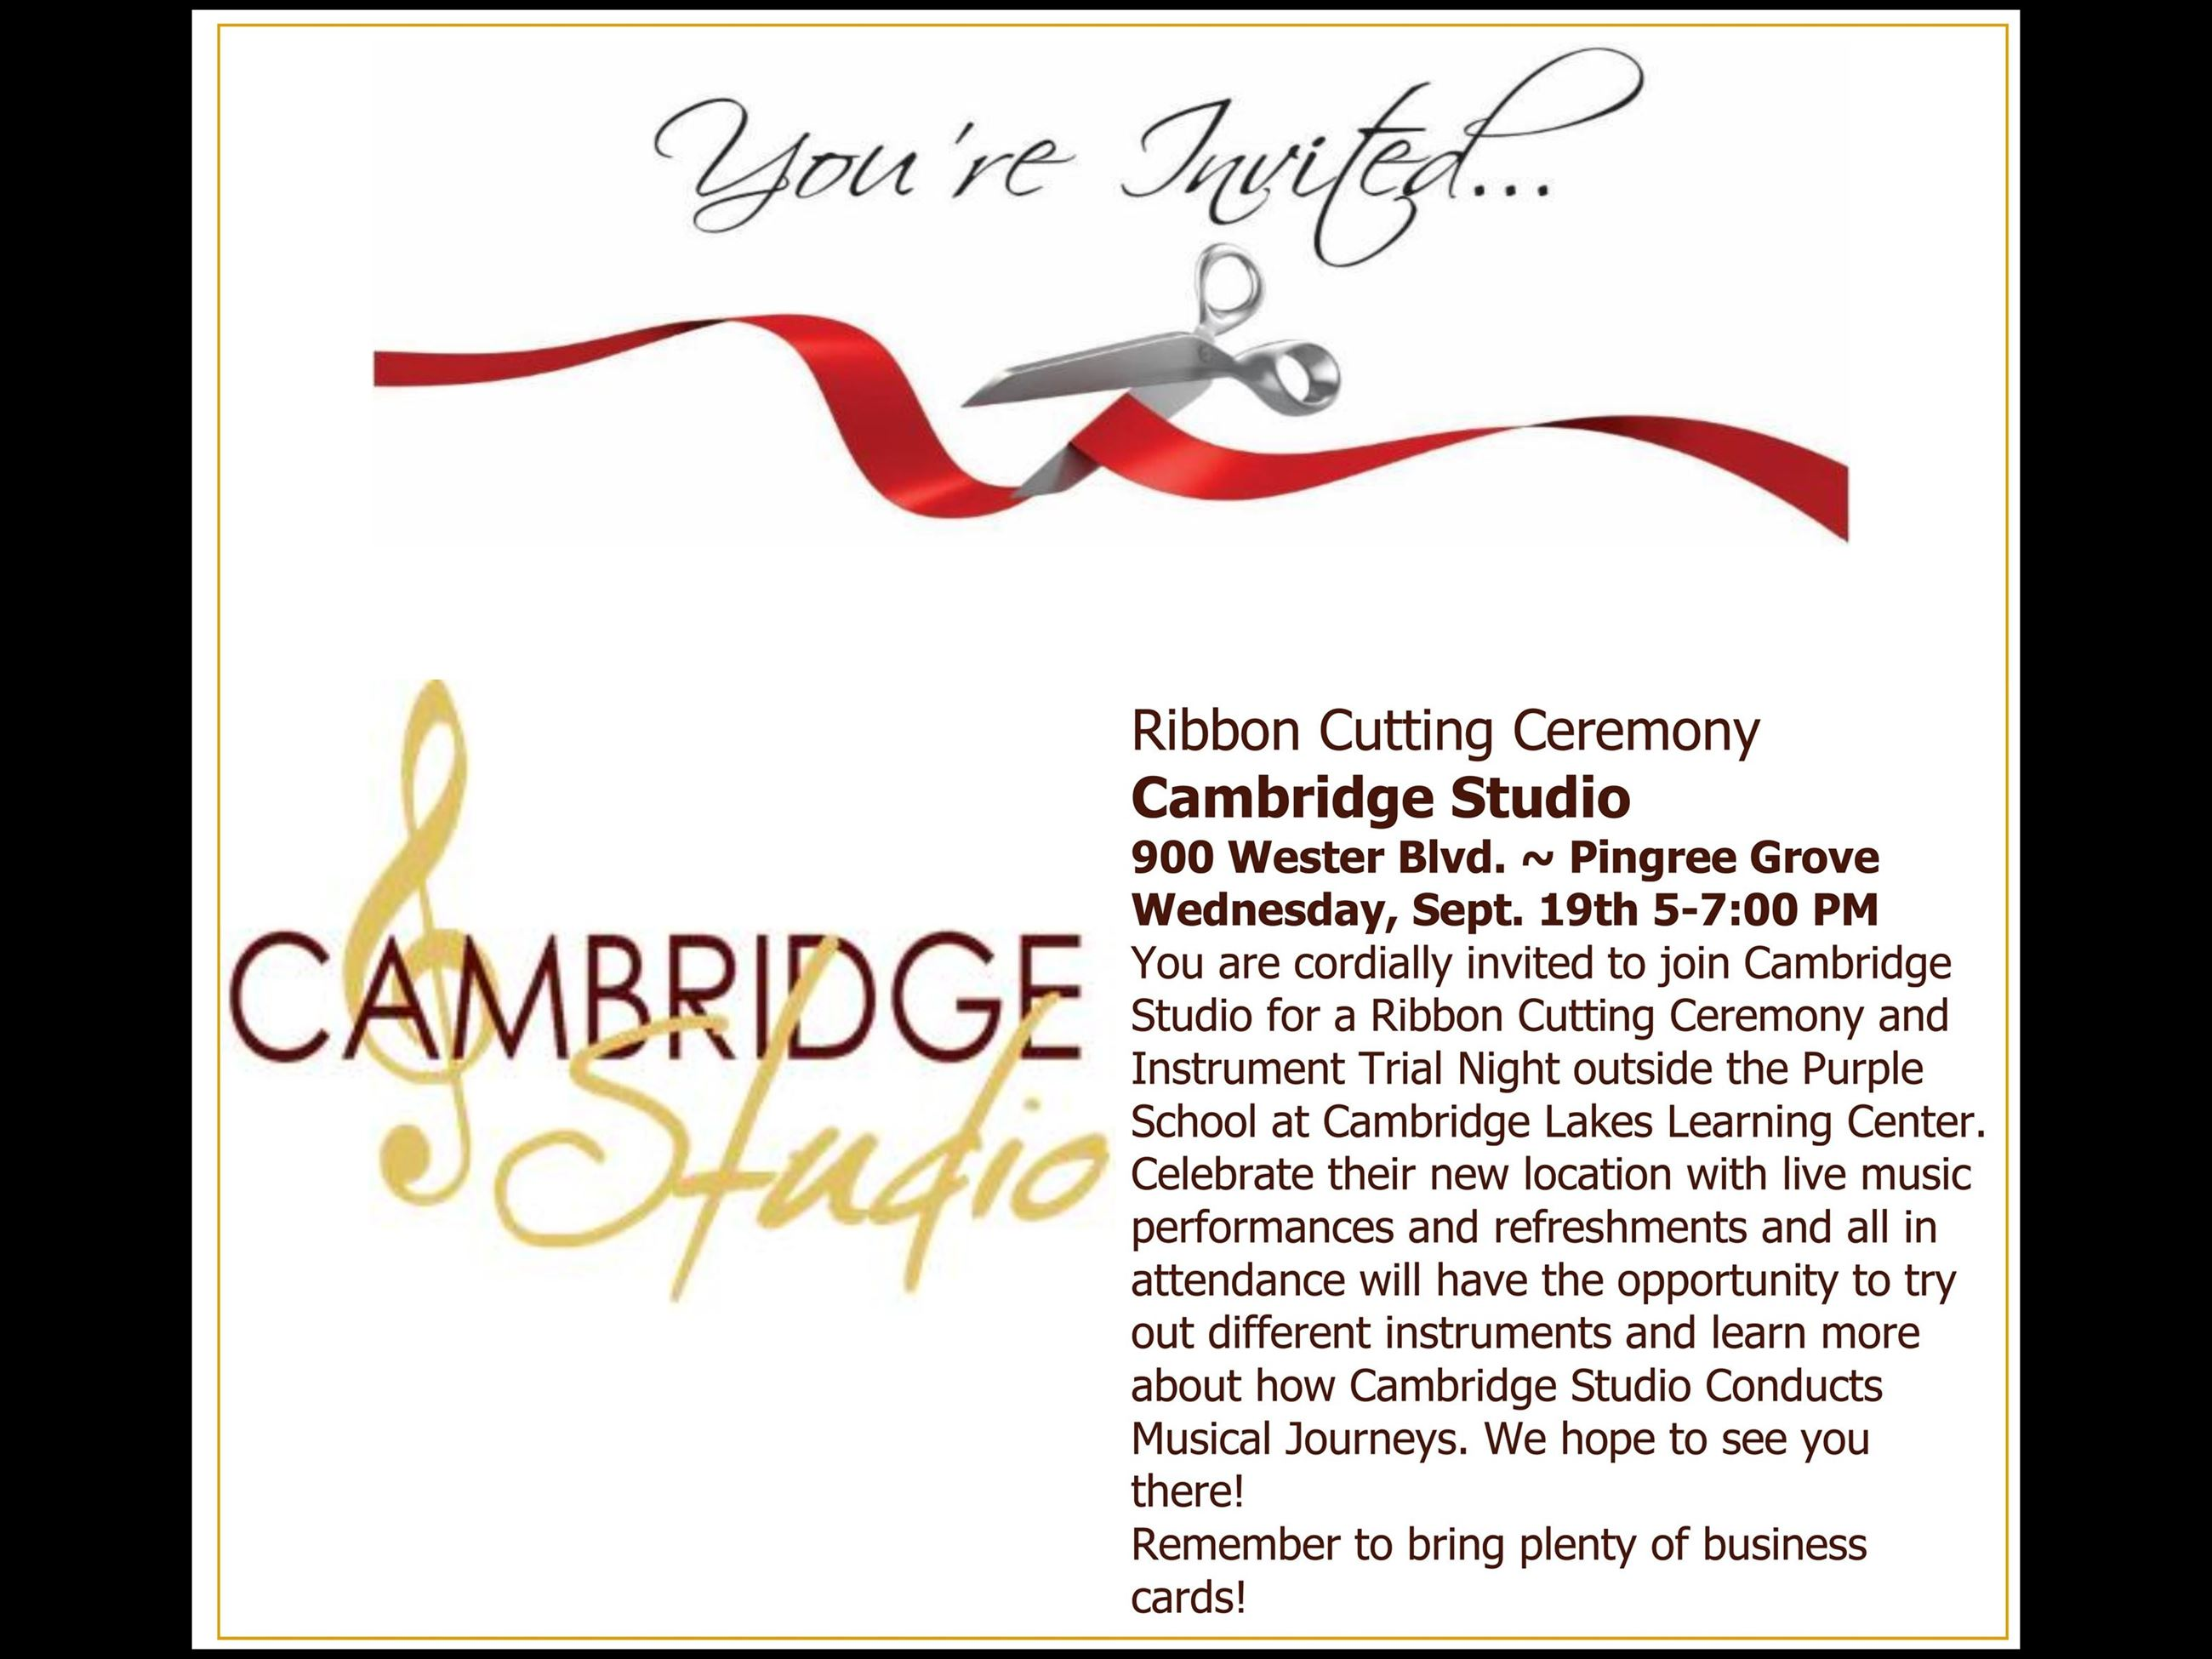 Cambridge Studio Ribbon Cutting